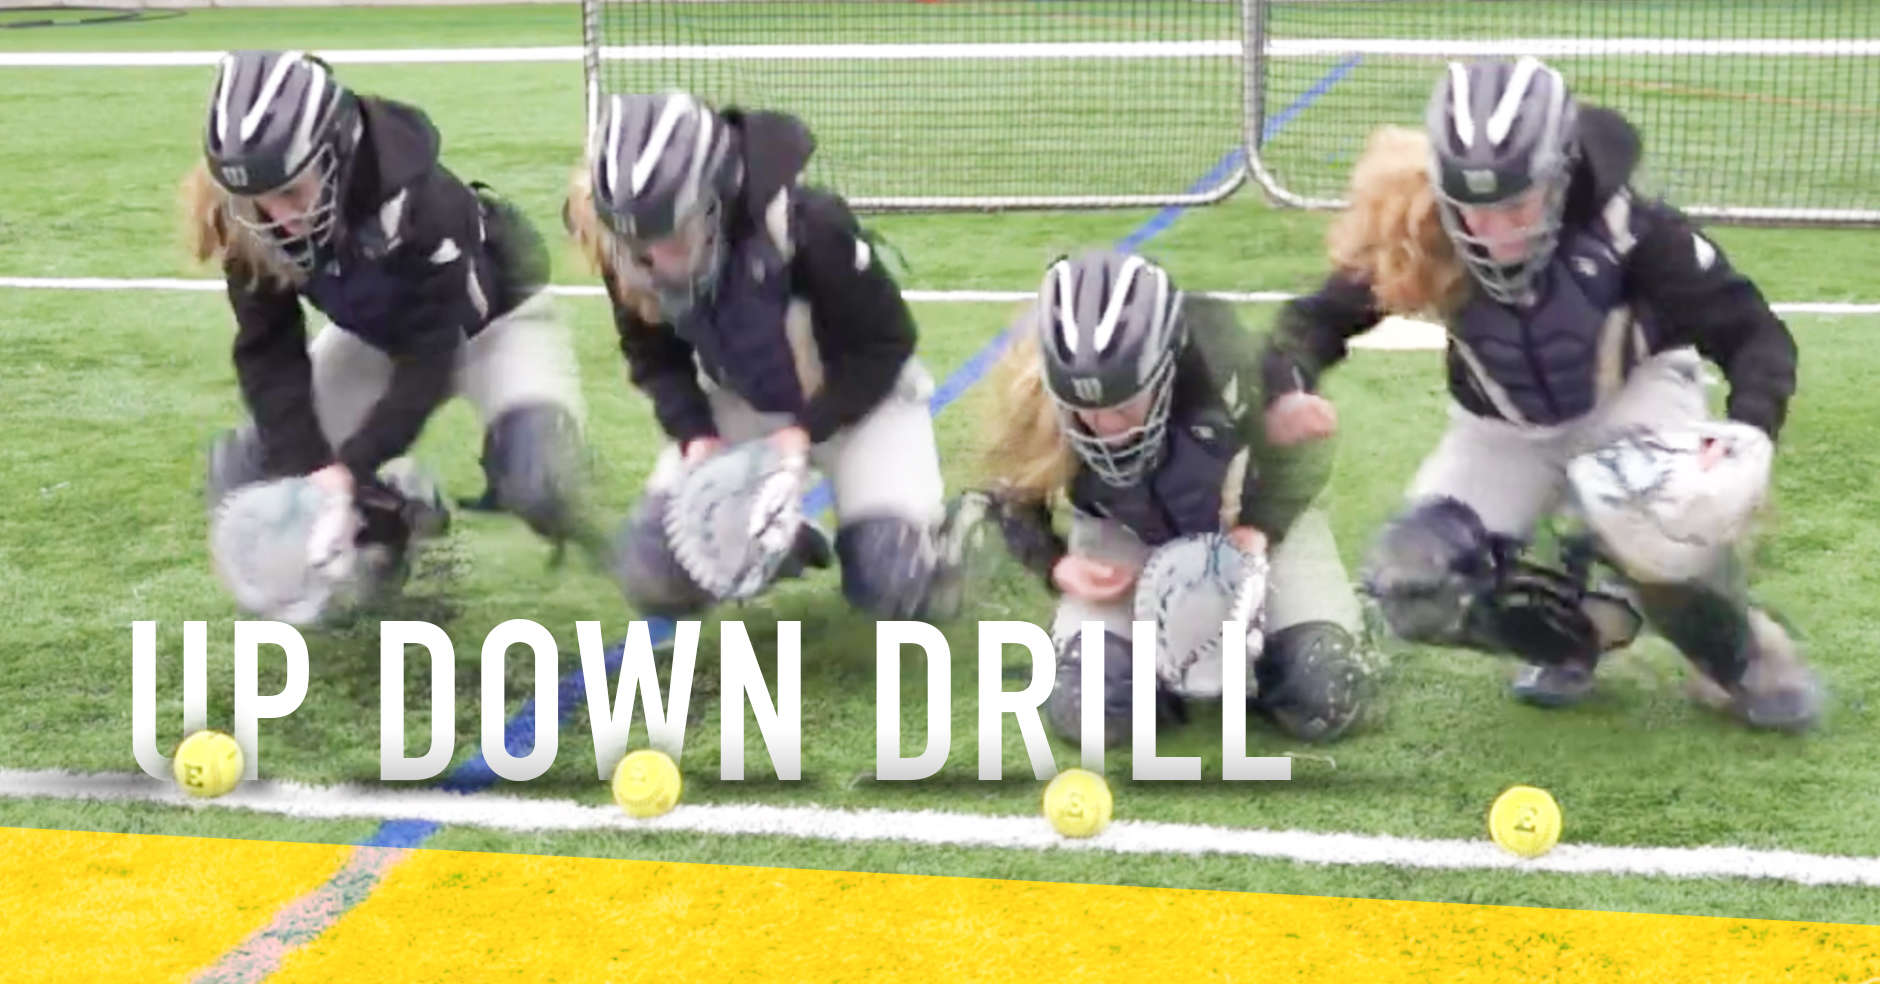 Catching Up Down Drill